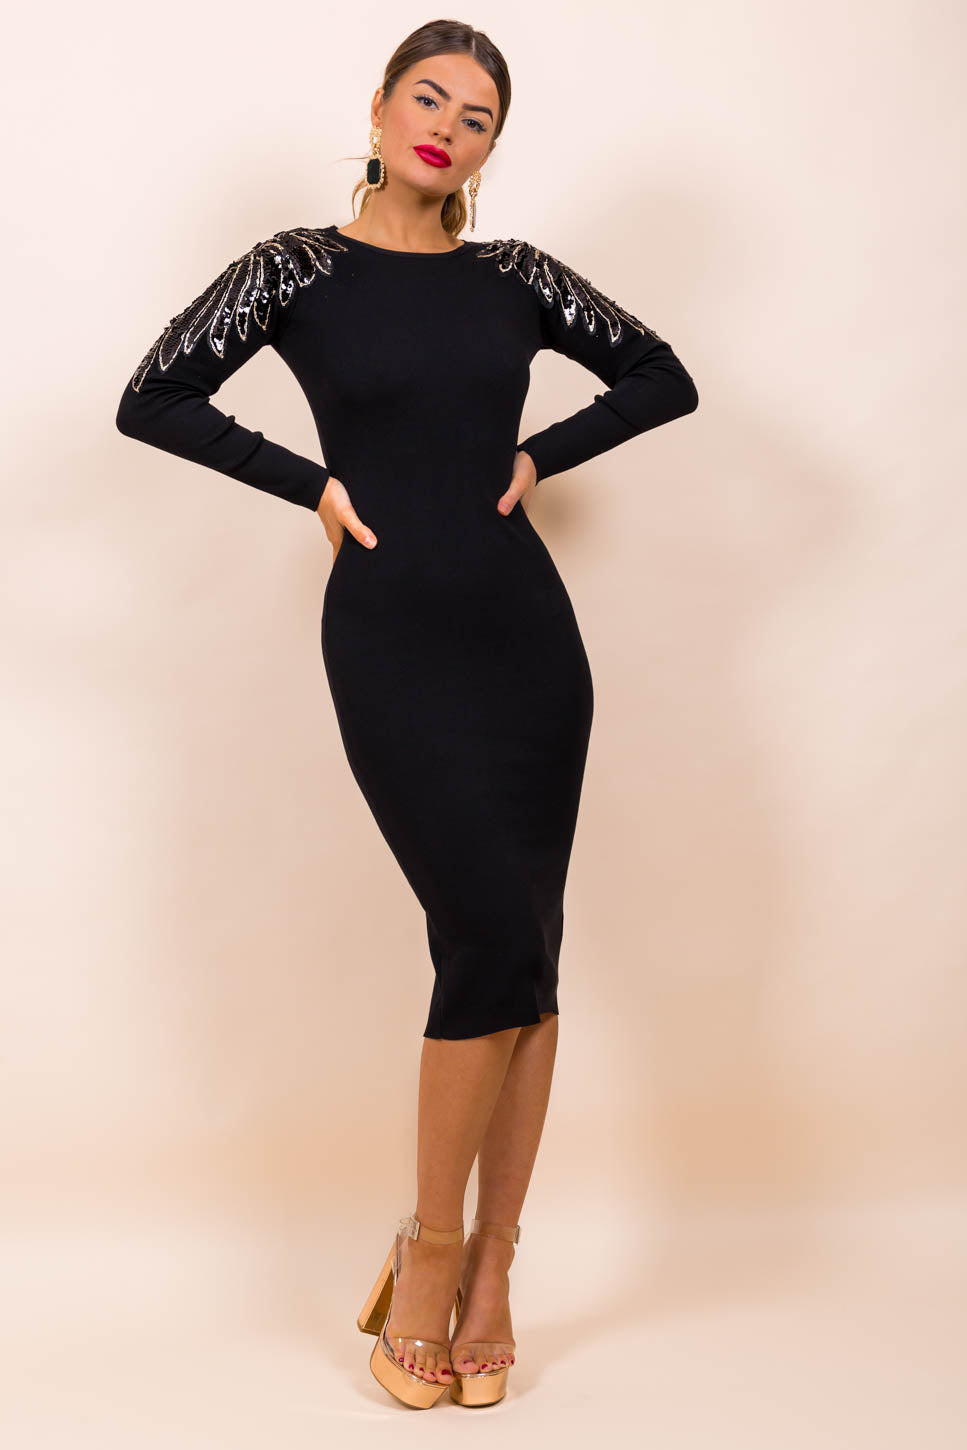 https://cdn.shopify.com/s/files/1/0062/6661/7925/files/product-video-take_knit_to_the_max-dress-in-black.mp4?5988